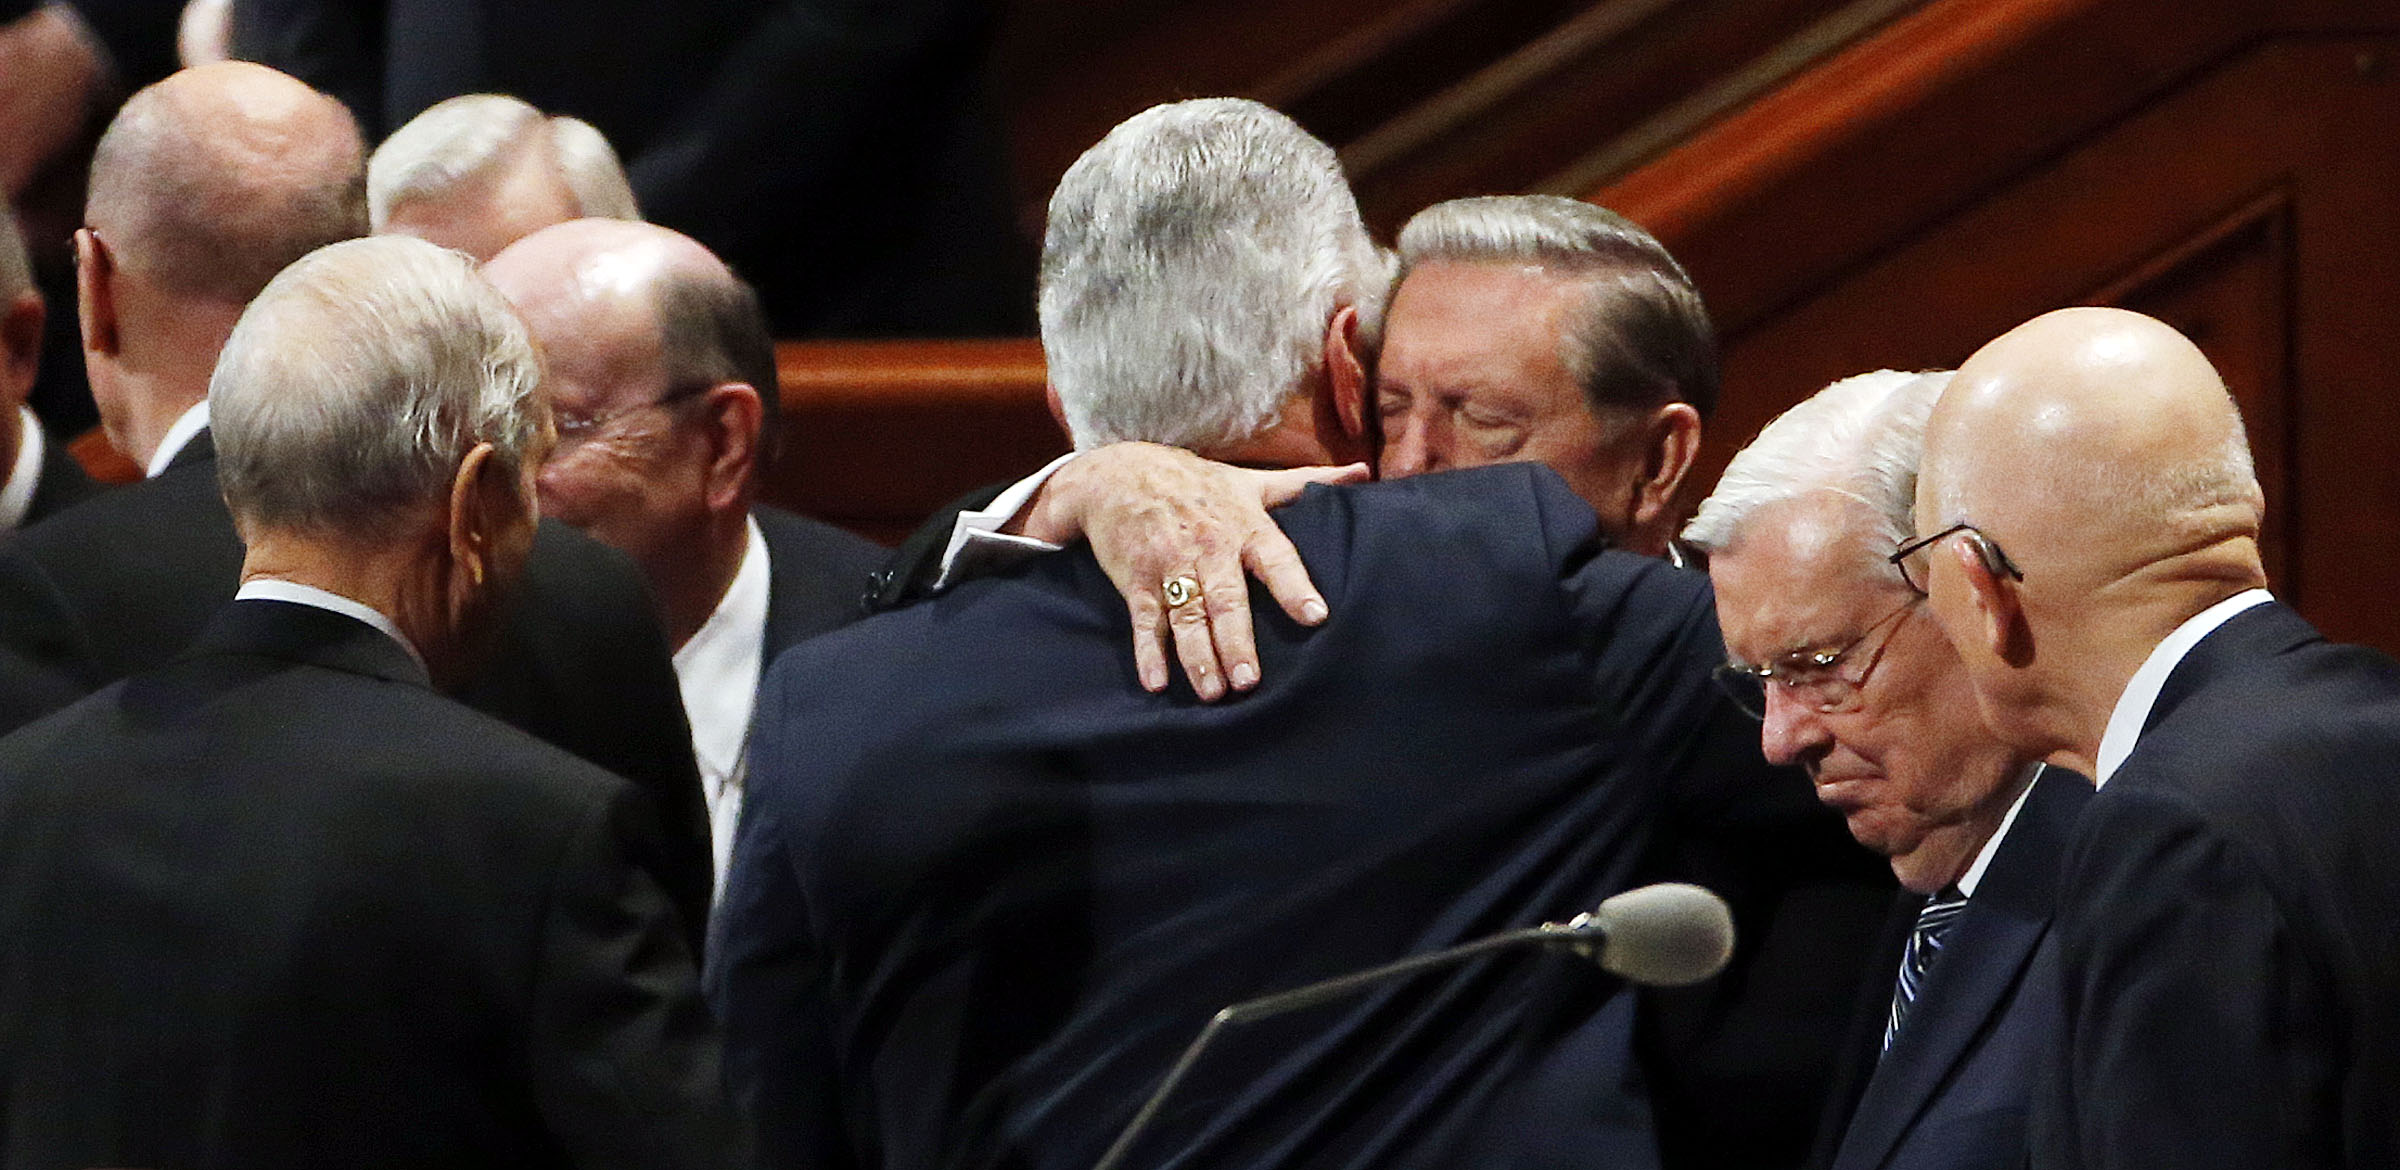 Elder Jeffrey R. Holland hugs President Dieter F. Uchtdorf, back to camera, after the Saturday morning session of the 187th Semiannual General Conference of The Church of Jesus Christ of Latter-day Saints in Salt Lake City on Saturday, Sept. 30, 2017.